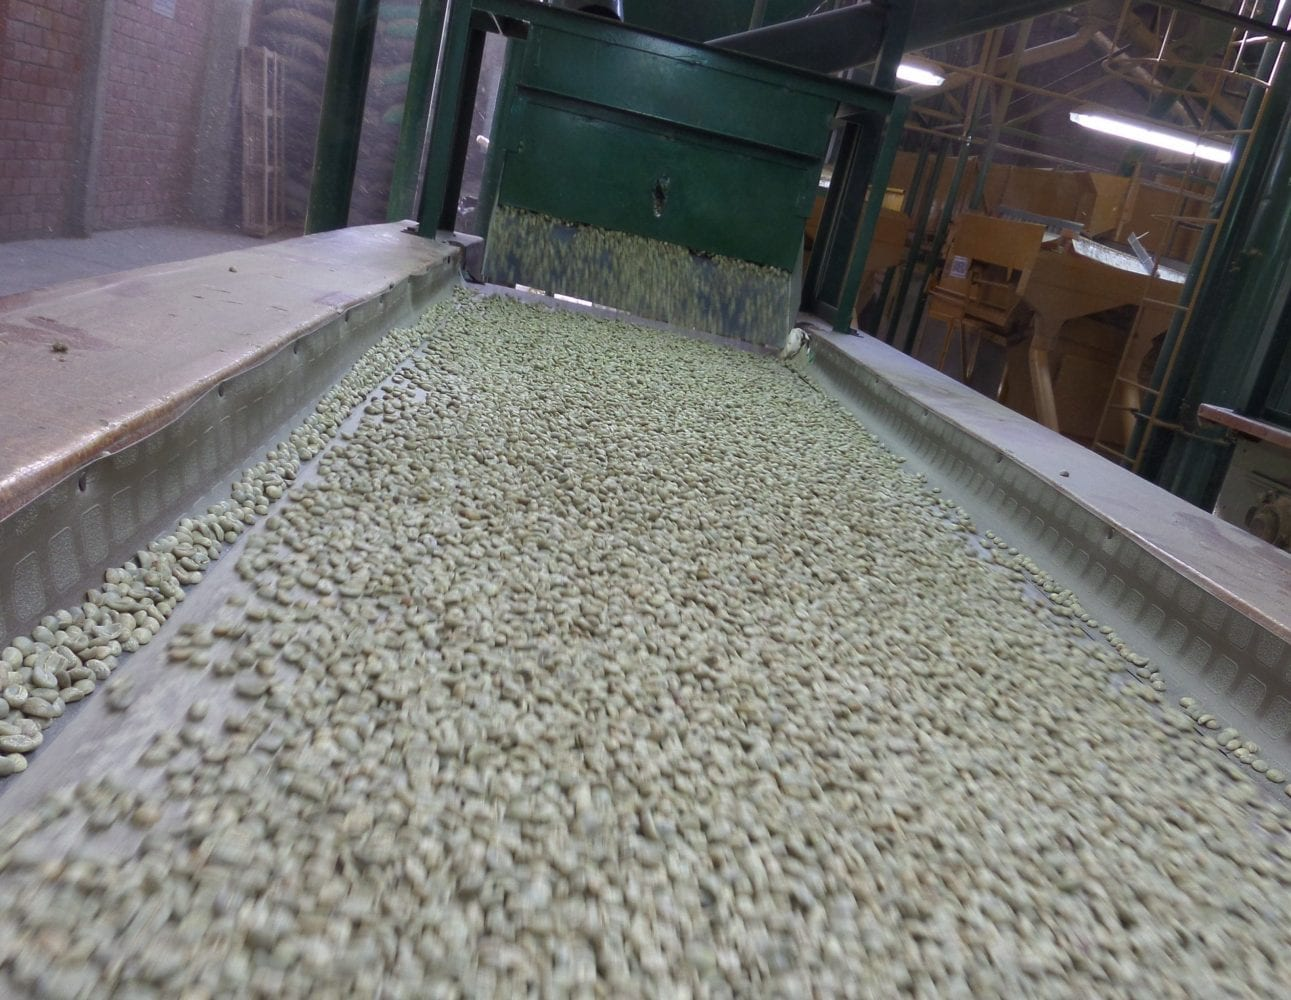 Green coffee being processed at the dry-mill in Puira